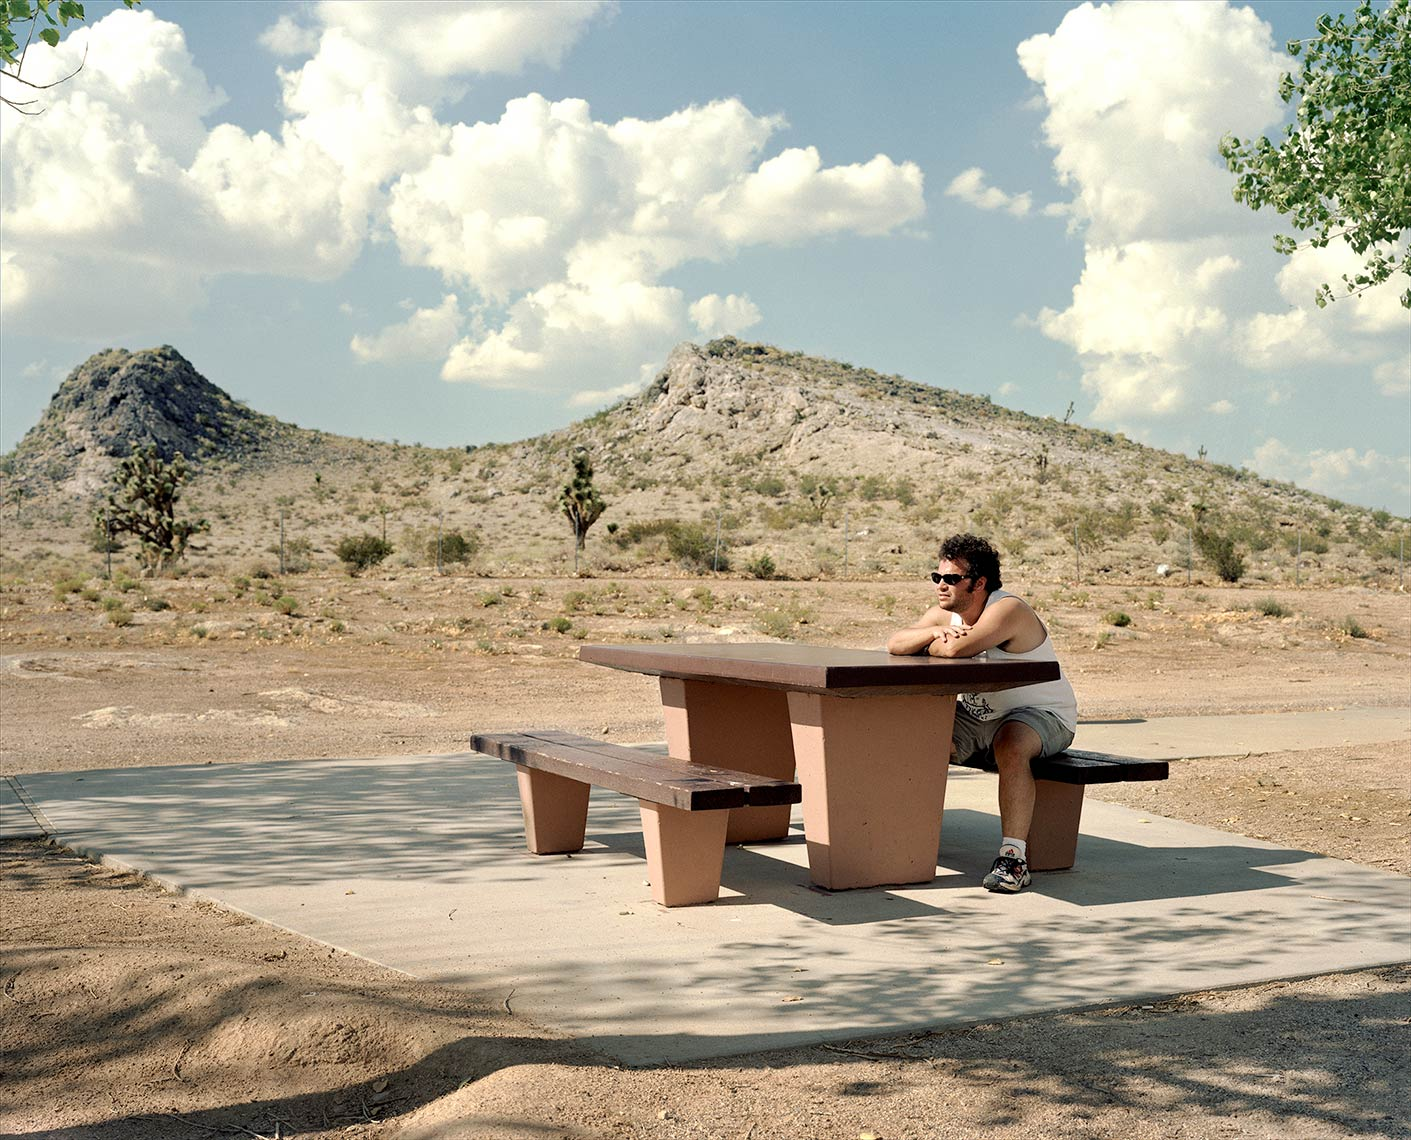 LEWIS_at_desert_bench